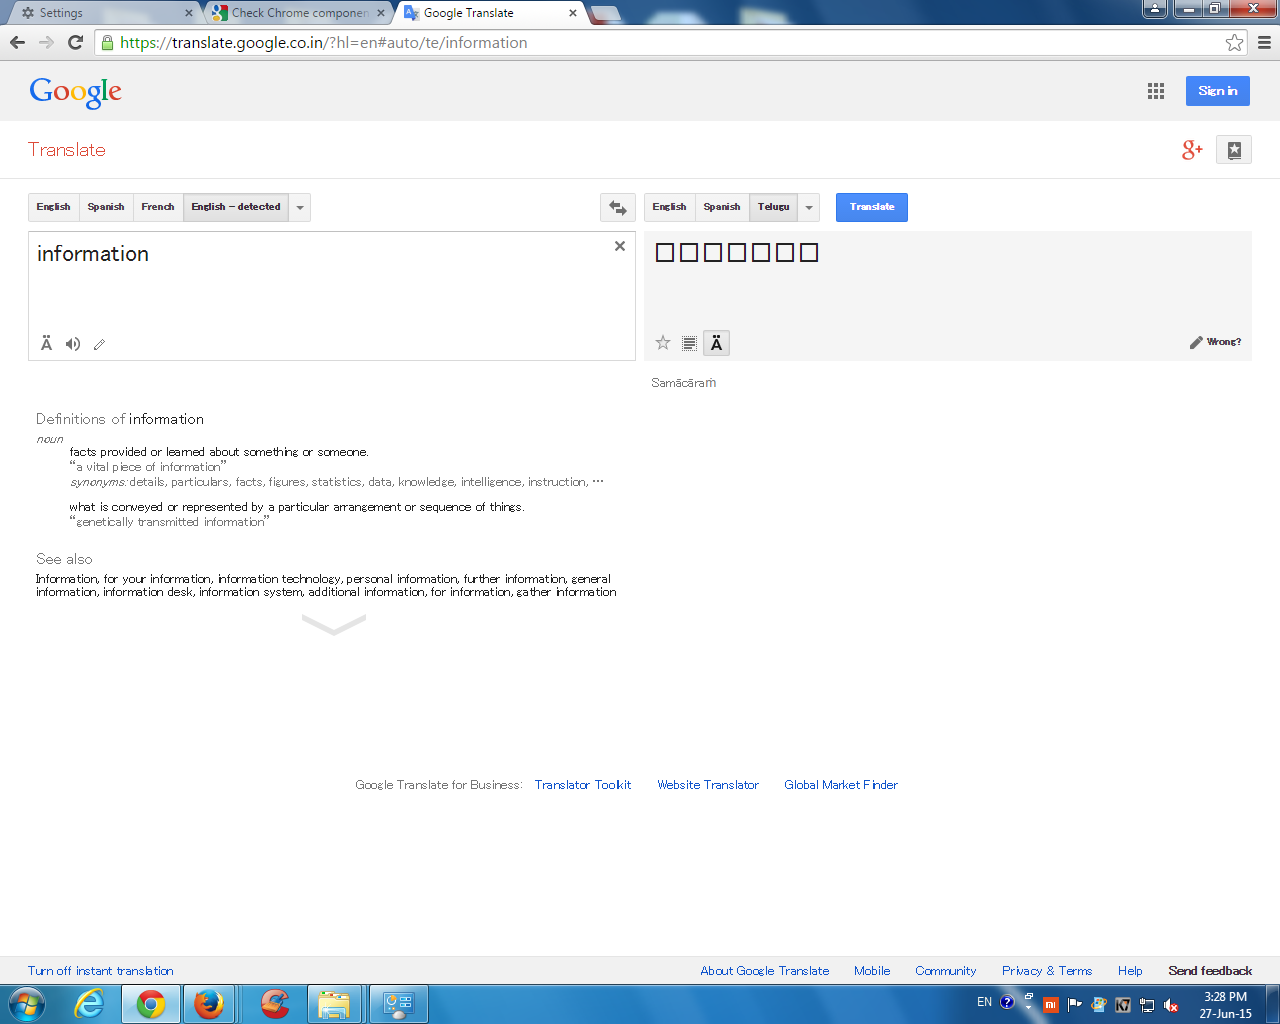 other languages not visible clearly pls rectify - Google Chrome Help